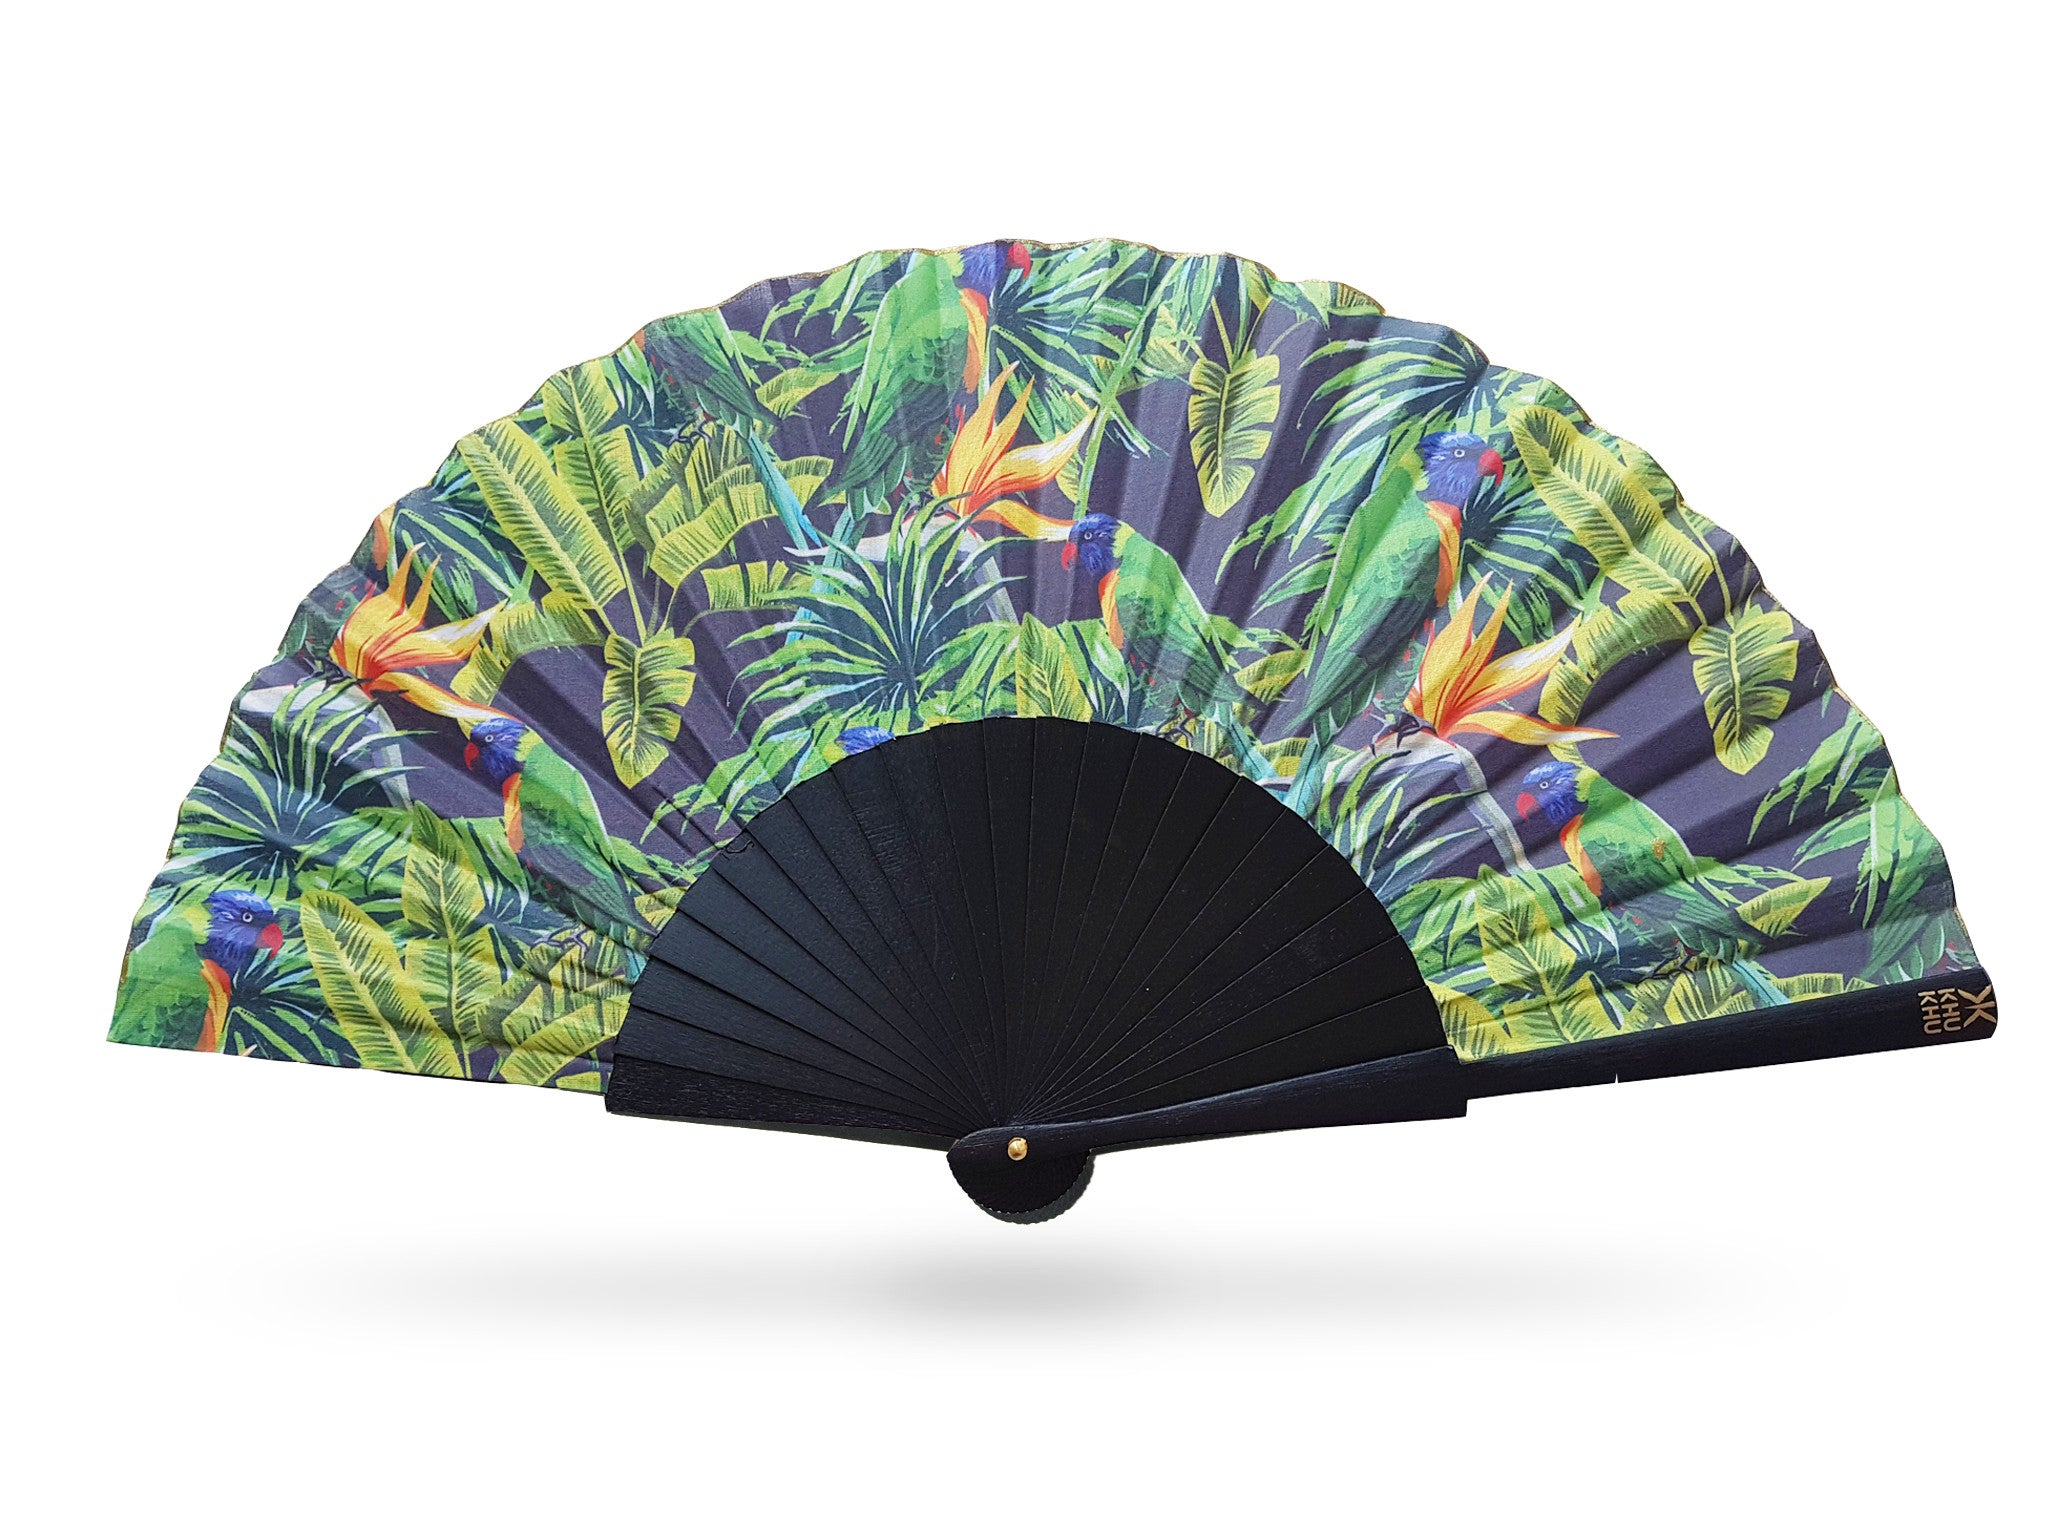 Khu Khu tropical Green Parakeet hand-fan. Beautiful green birds perch amongst tropical leaves and orange passion flowers. Fan mounted with black painted wood sticks and mounted with high grade cotton.